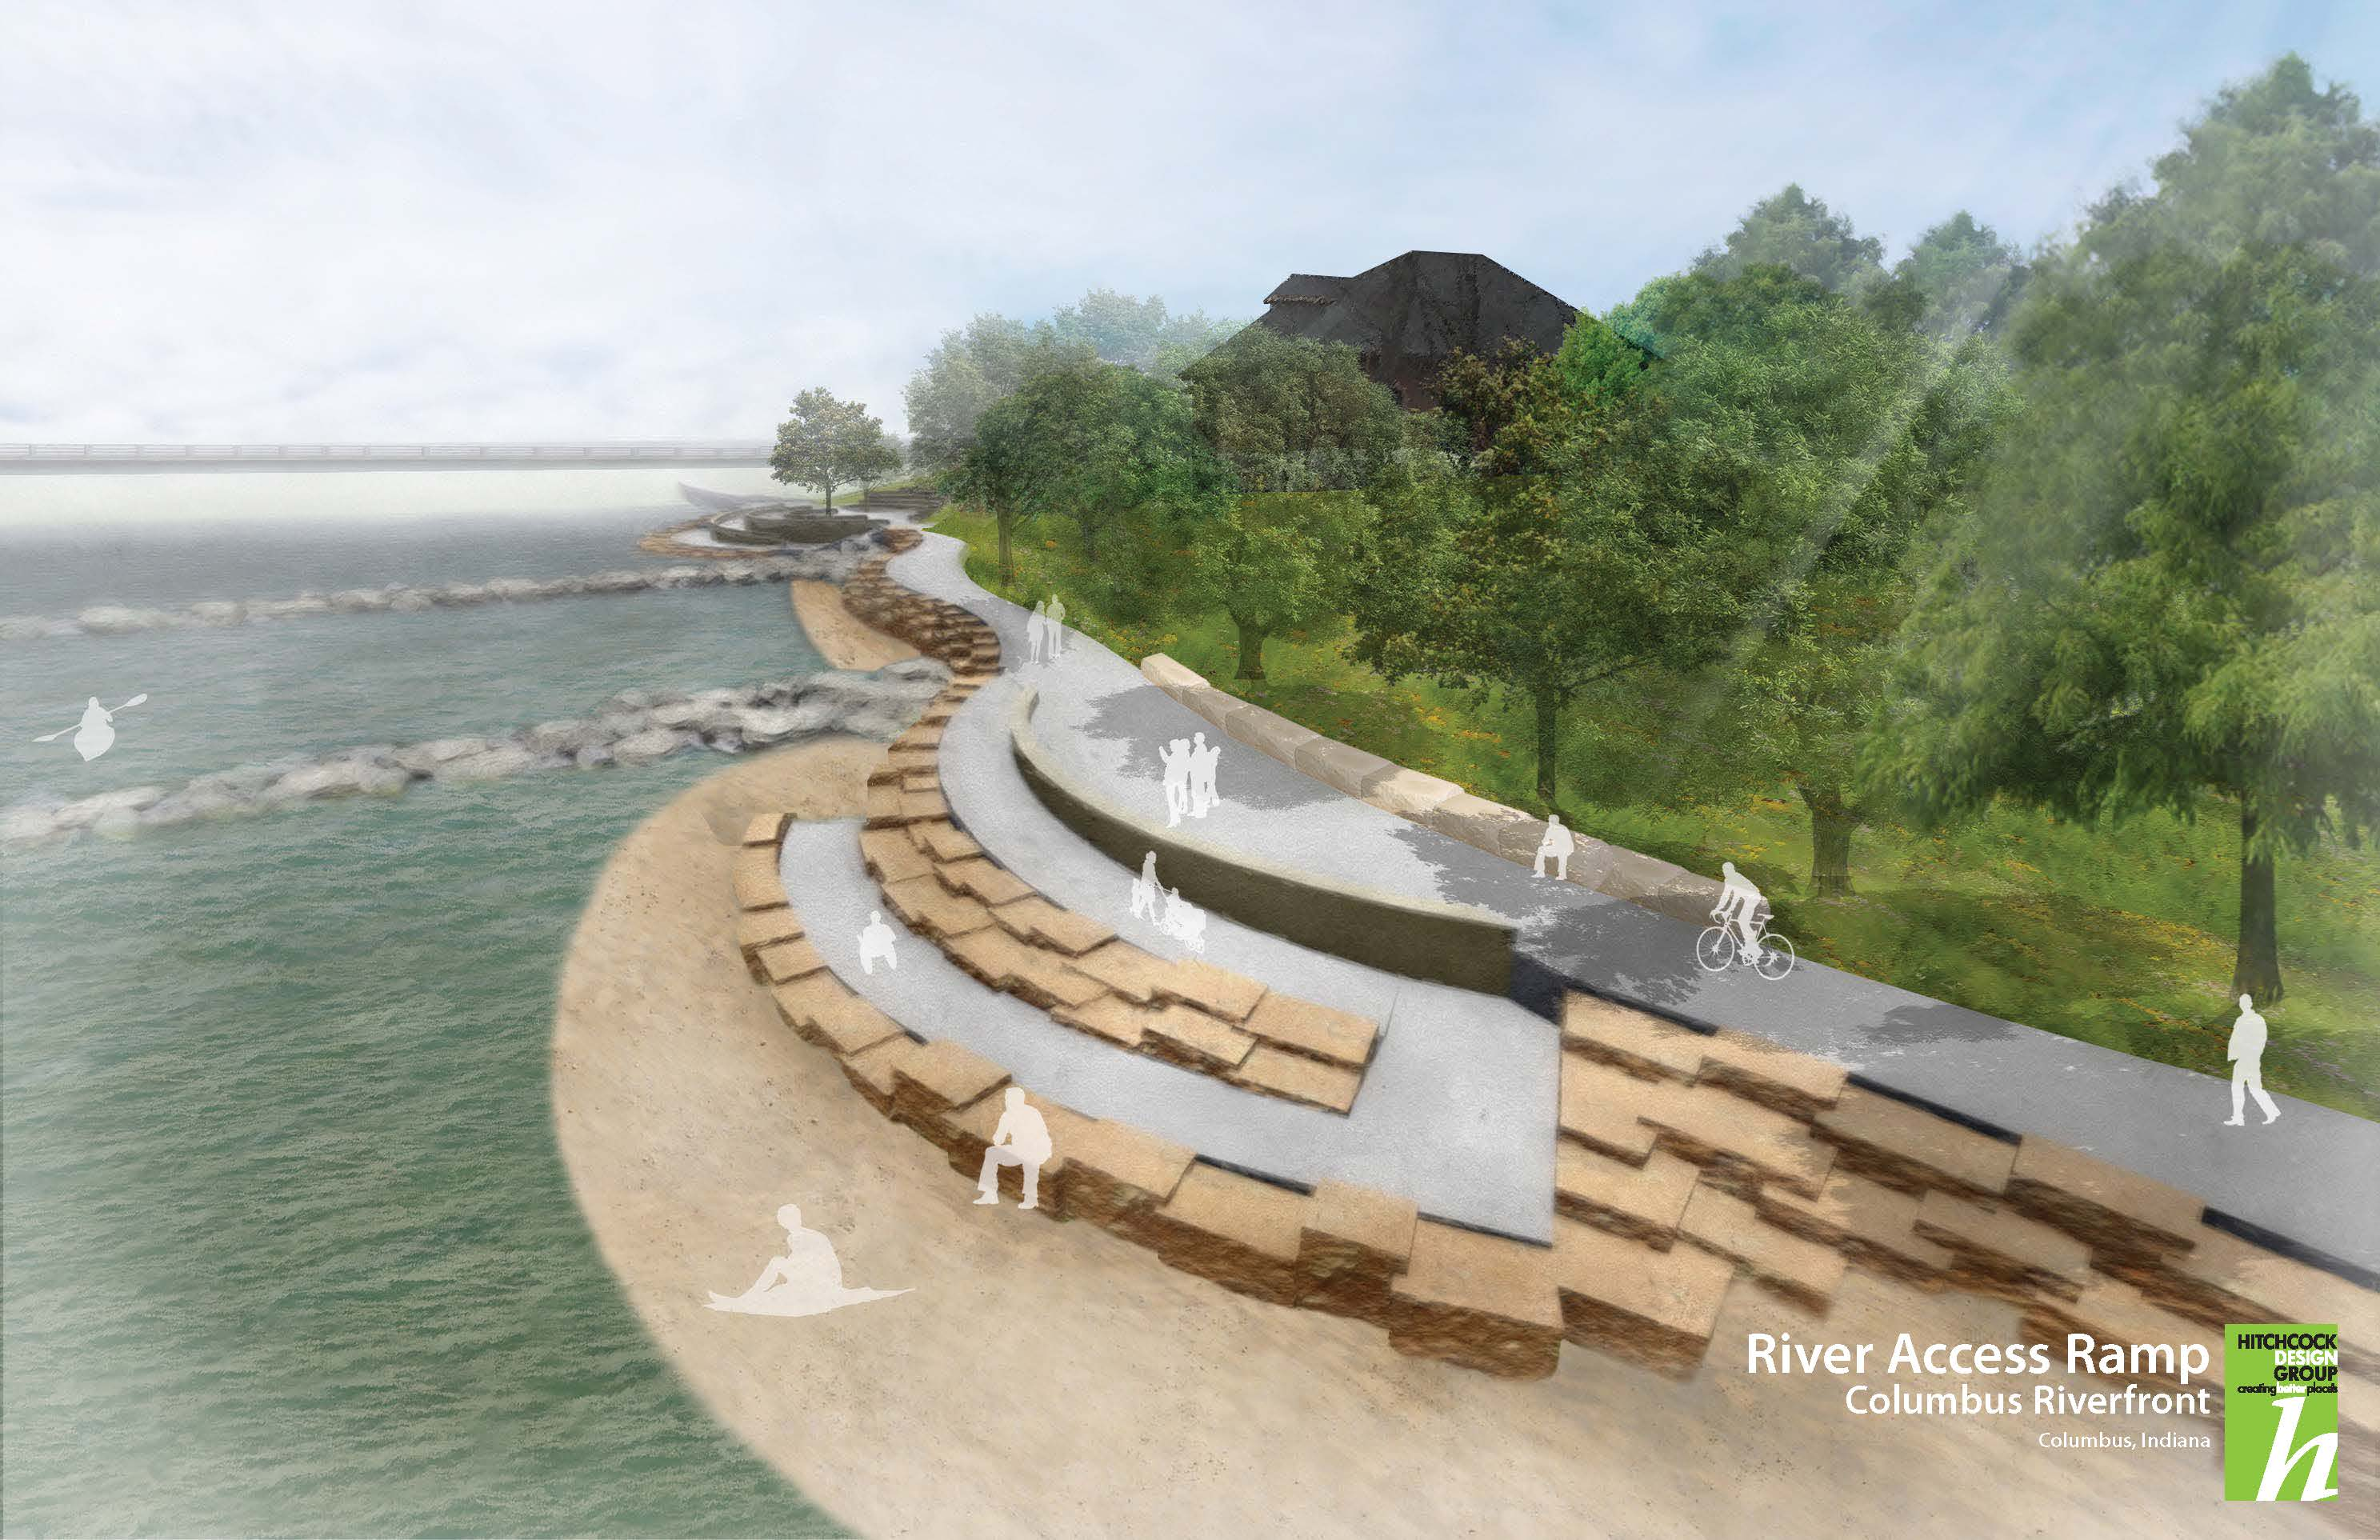 River Access Ramp Perspective